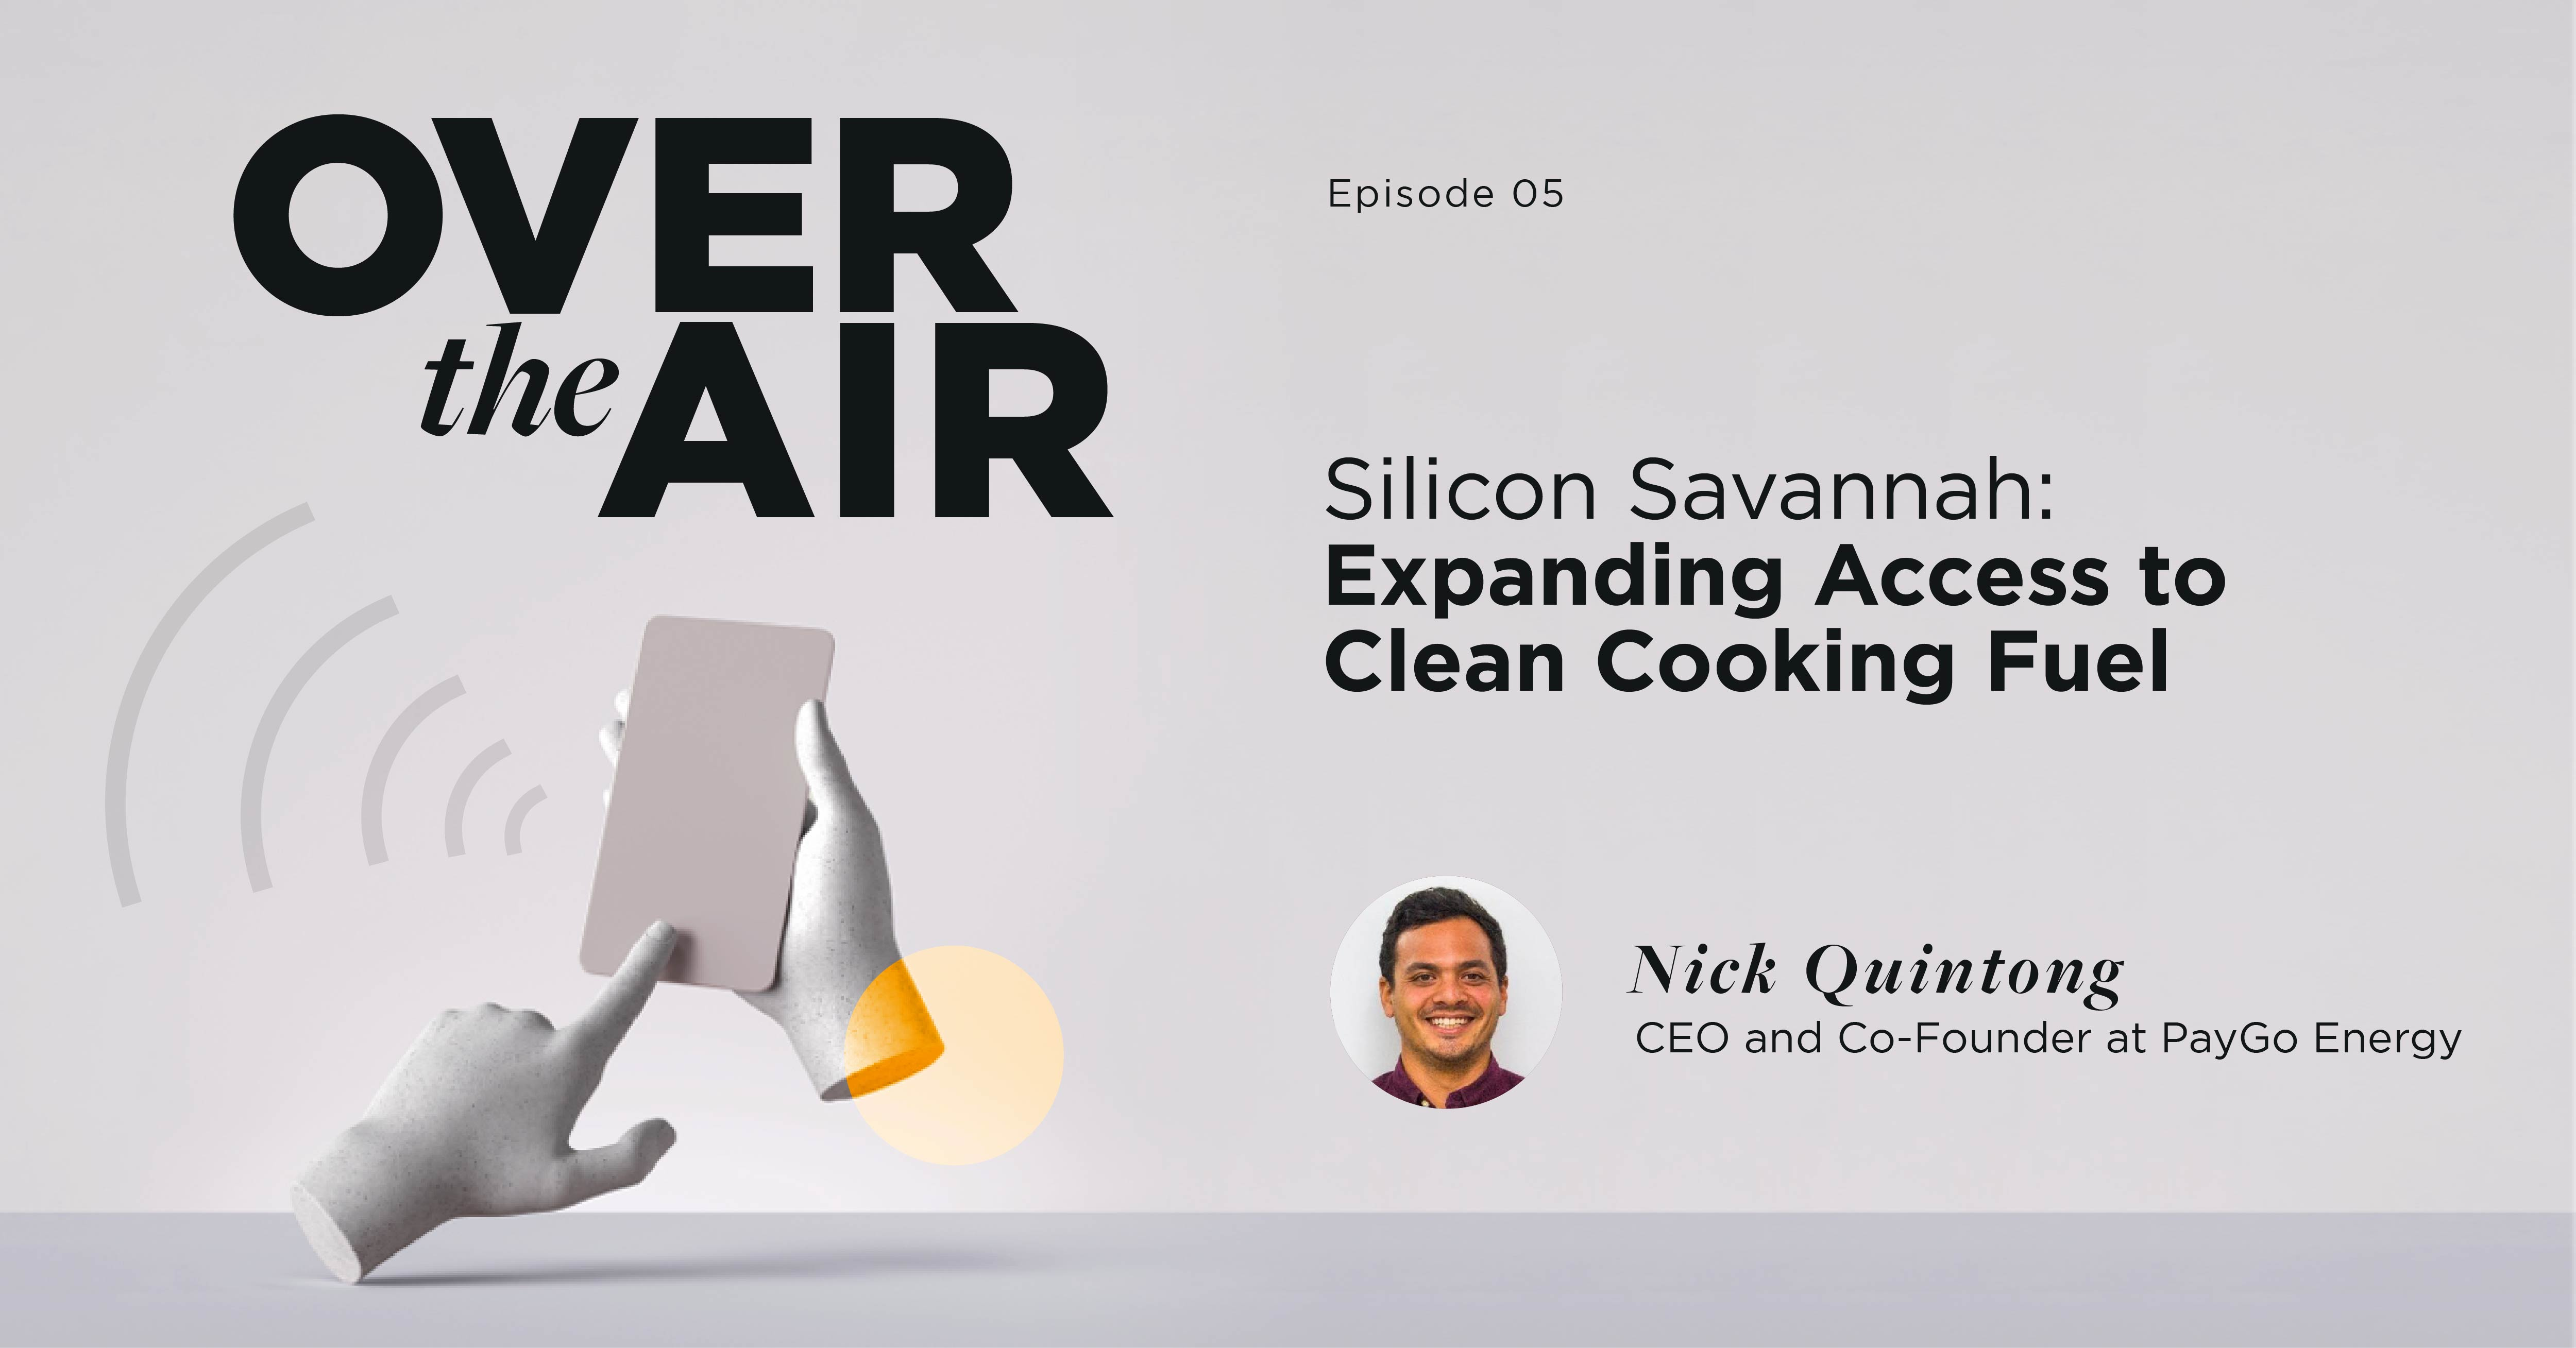 Silicon Savannah: Expanding Access to Clean Cooking Fuel